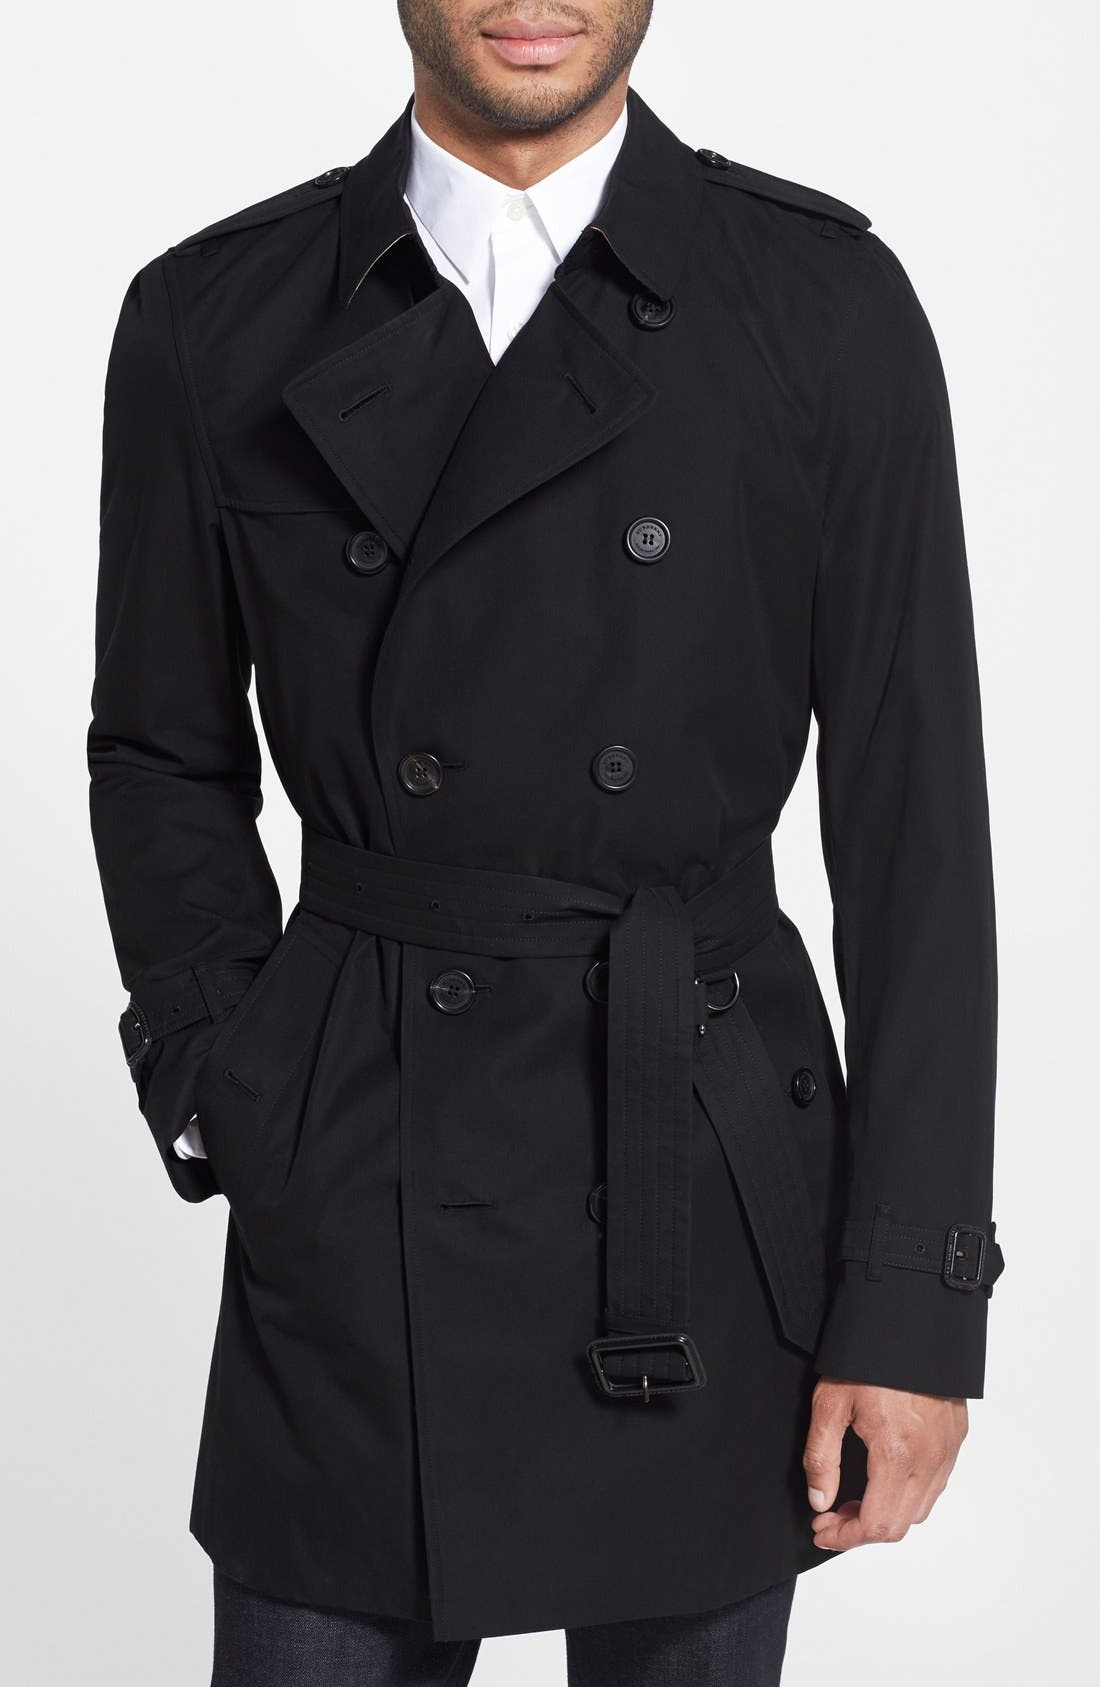 Kensington Double Breasted Trench Coat,                         Main,                         color, BLACK-NEW